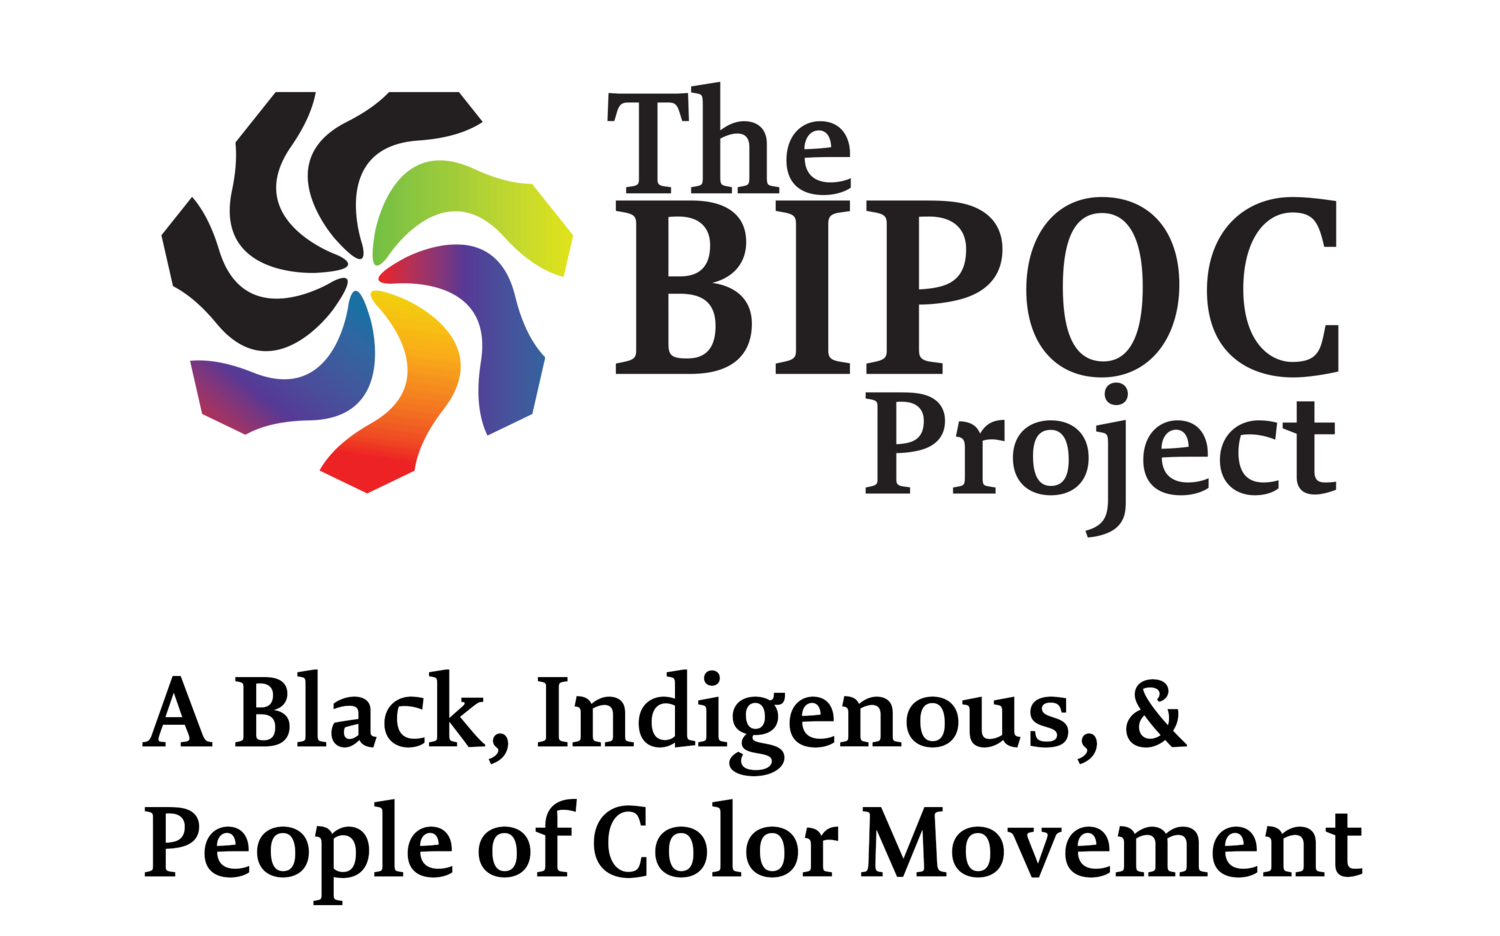 The BIPOC Project